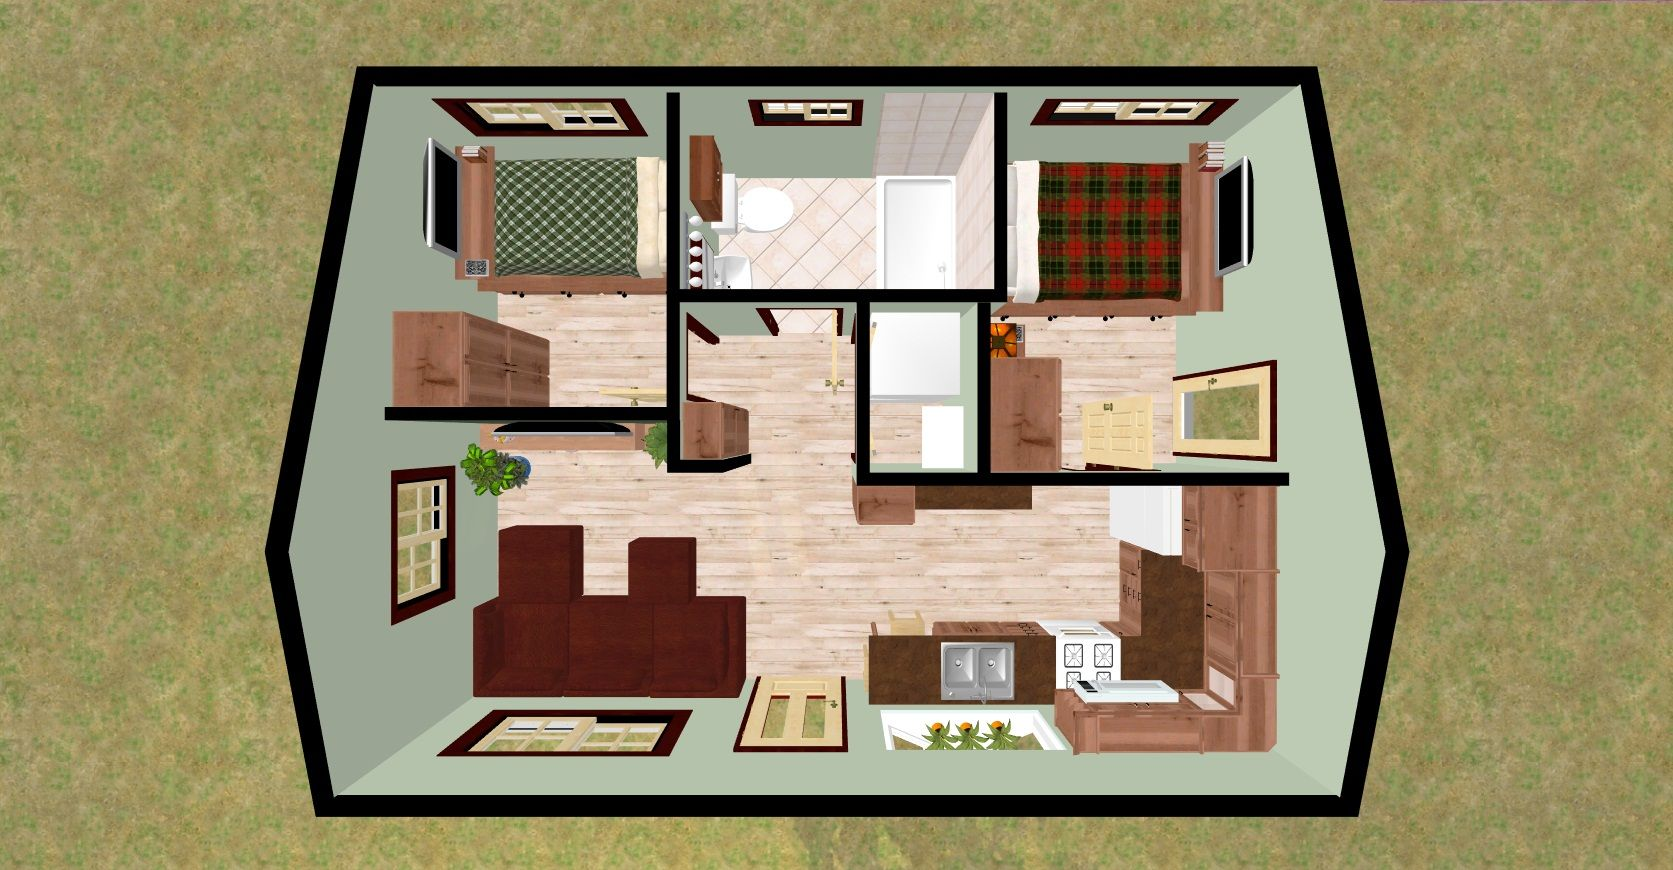 cozyhomeplanscom 432 sq ft small house firefly 3d - Small House Blueprints